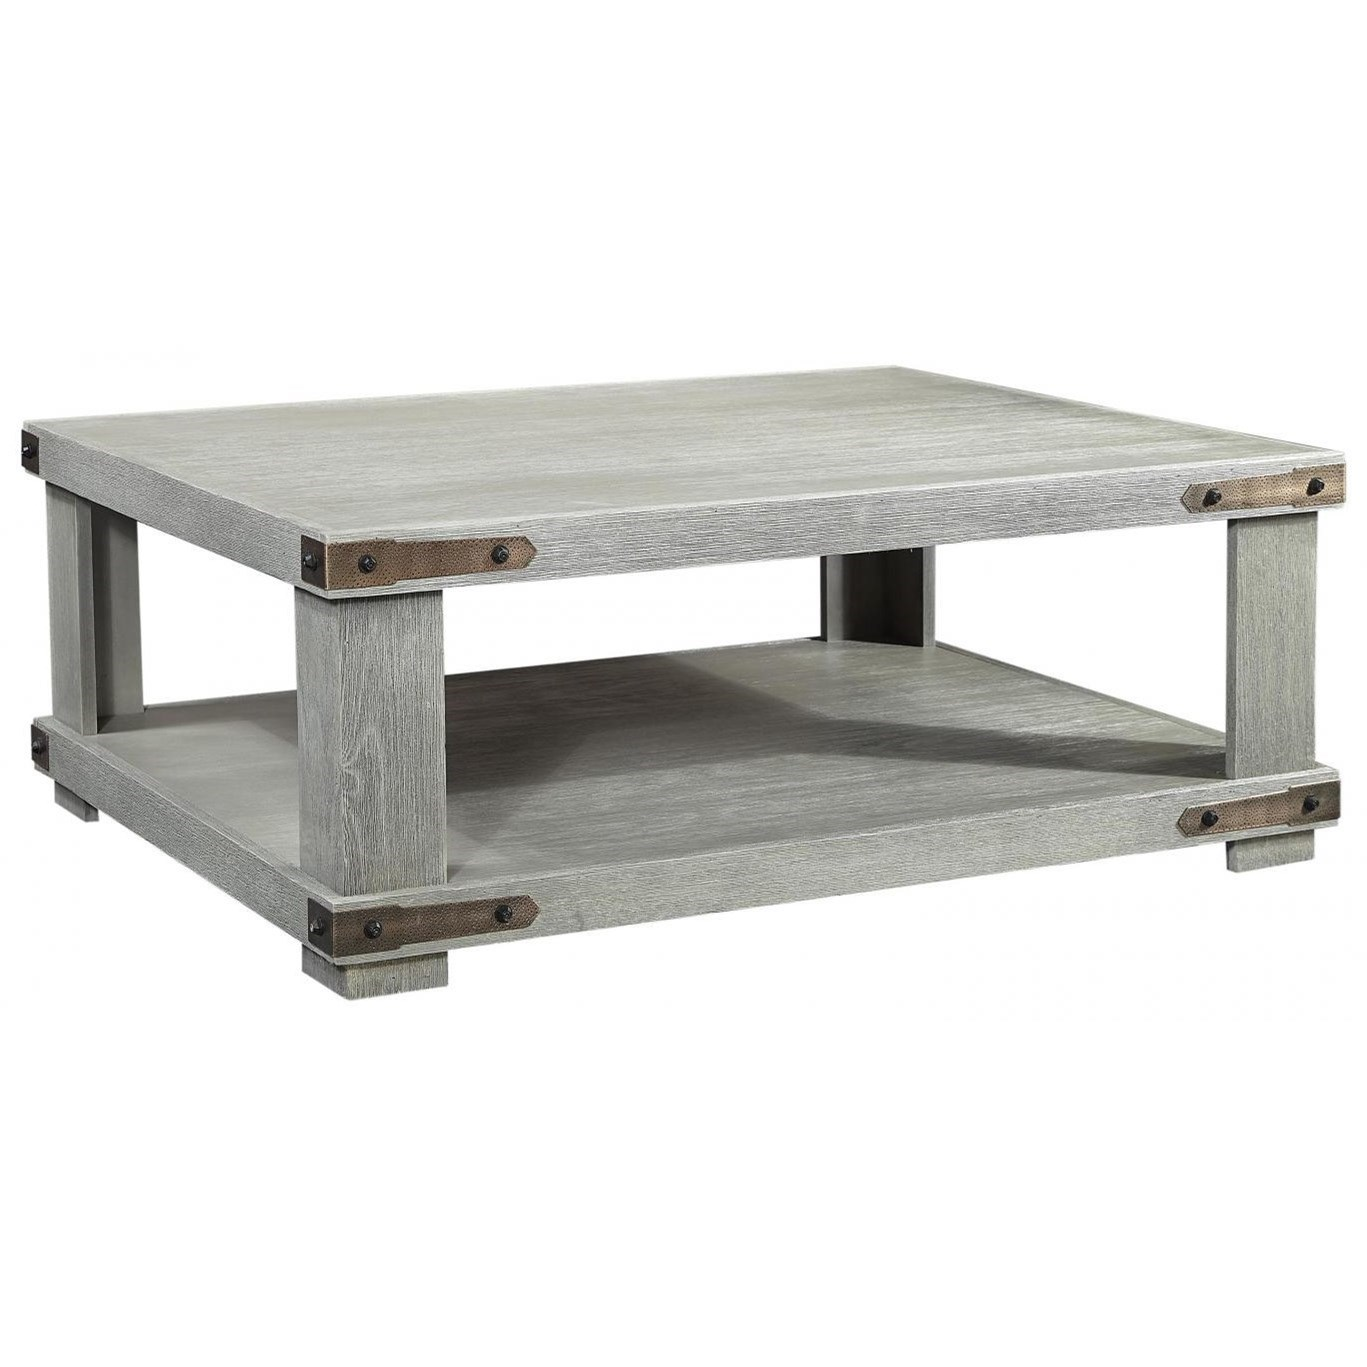 Sawyer Cocktail Table by Aspenhome at Stoney Creek Furniture